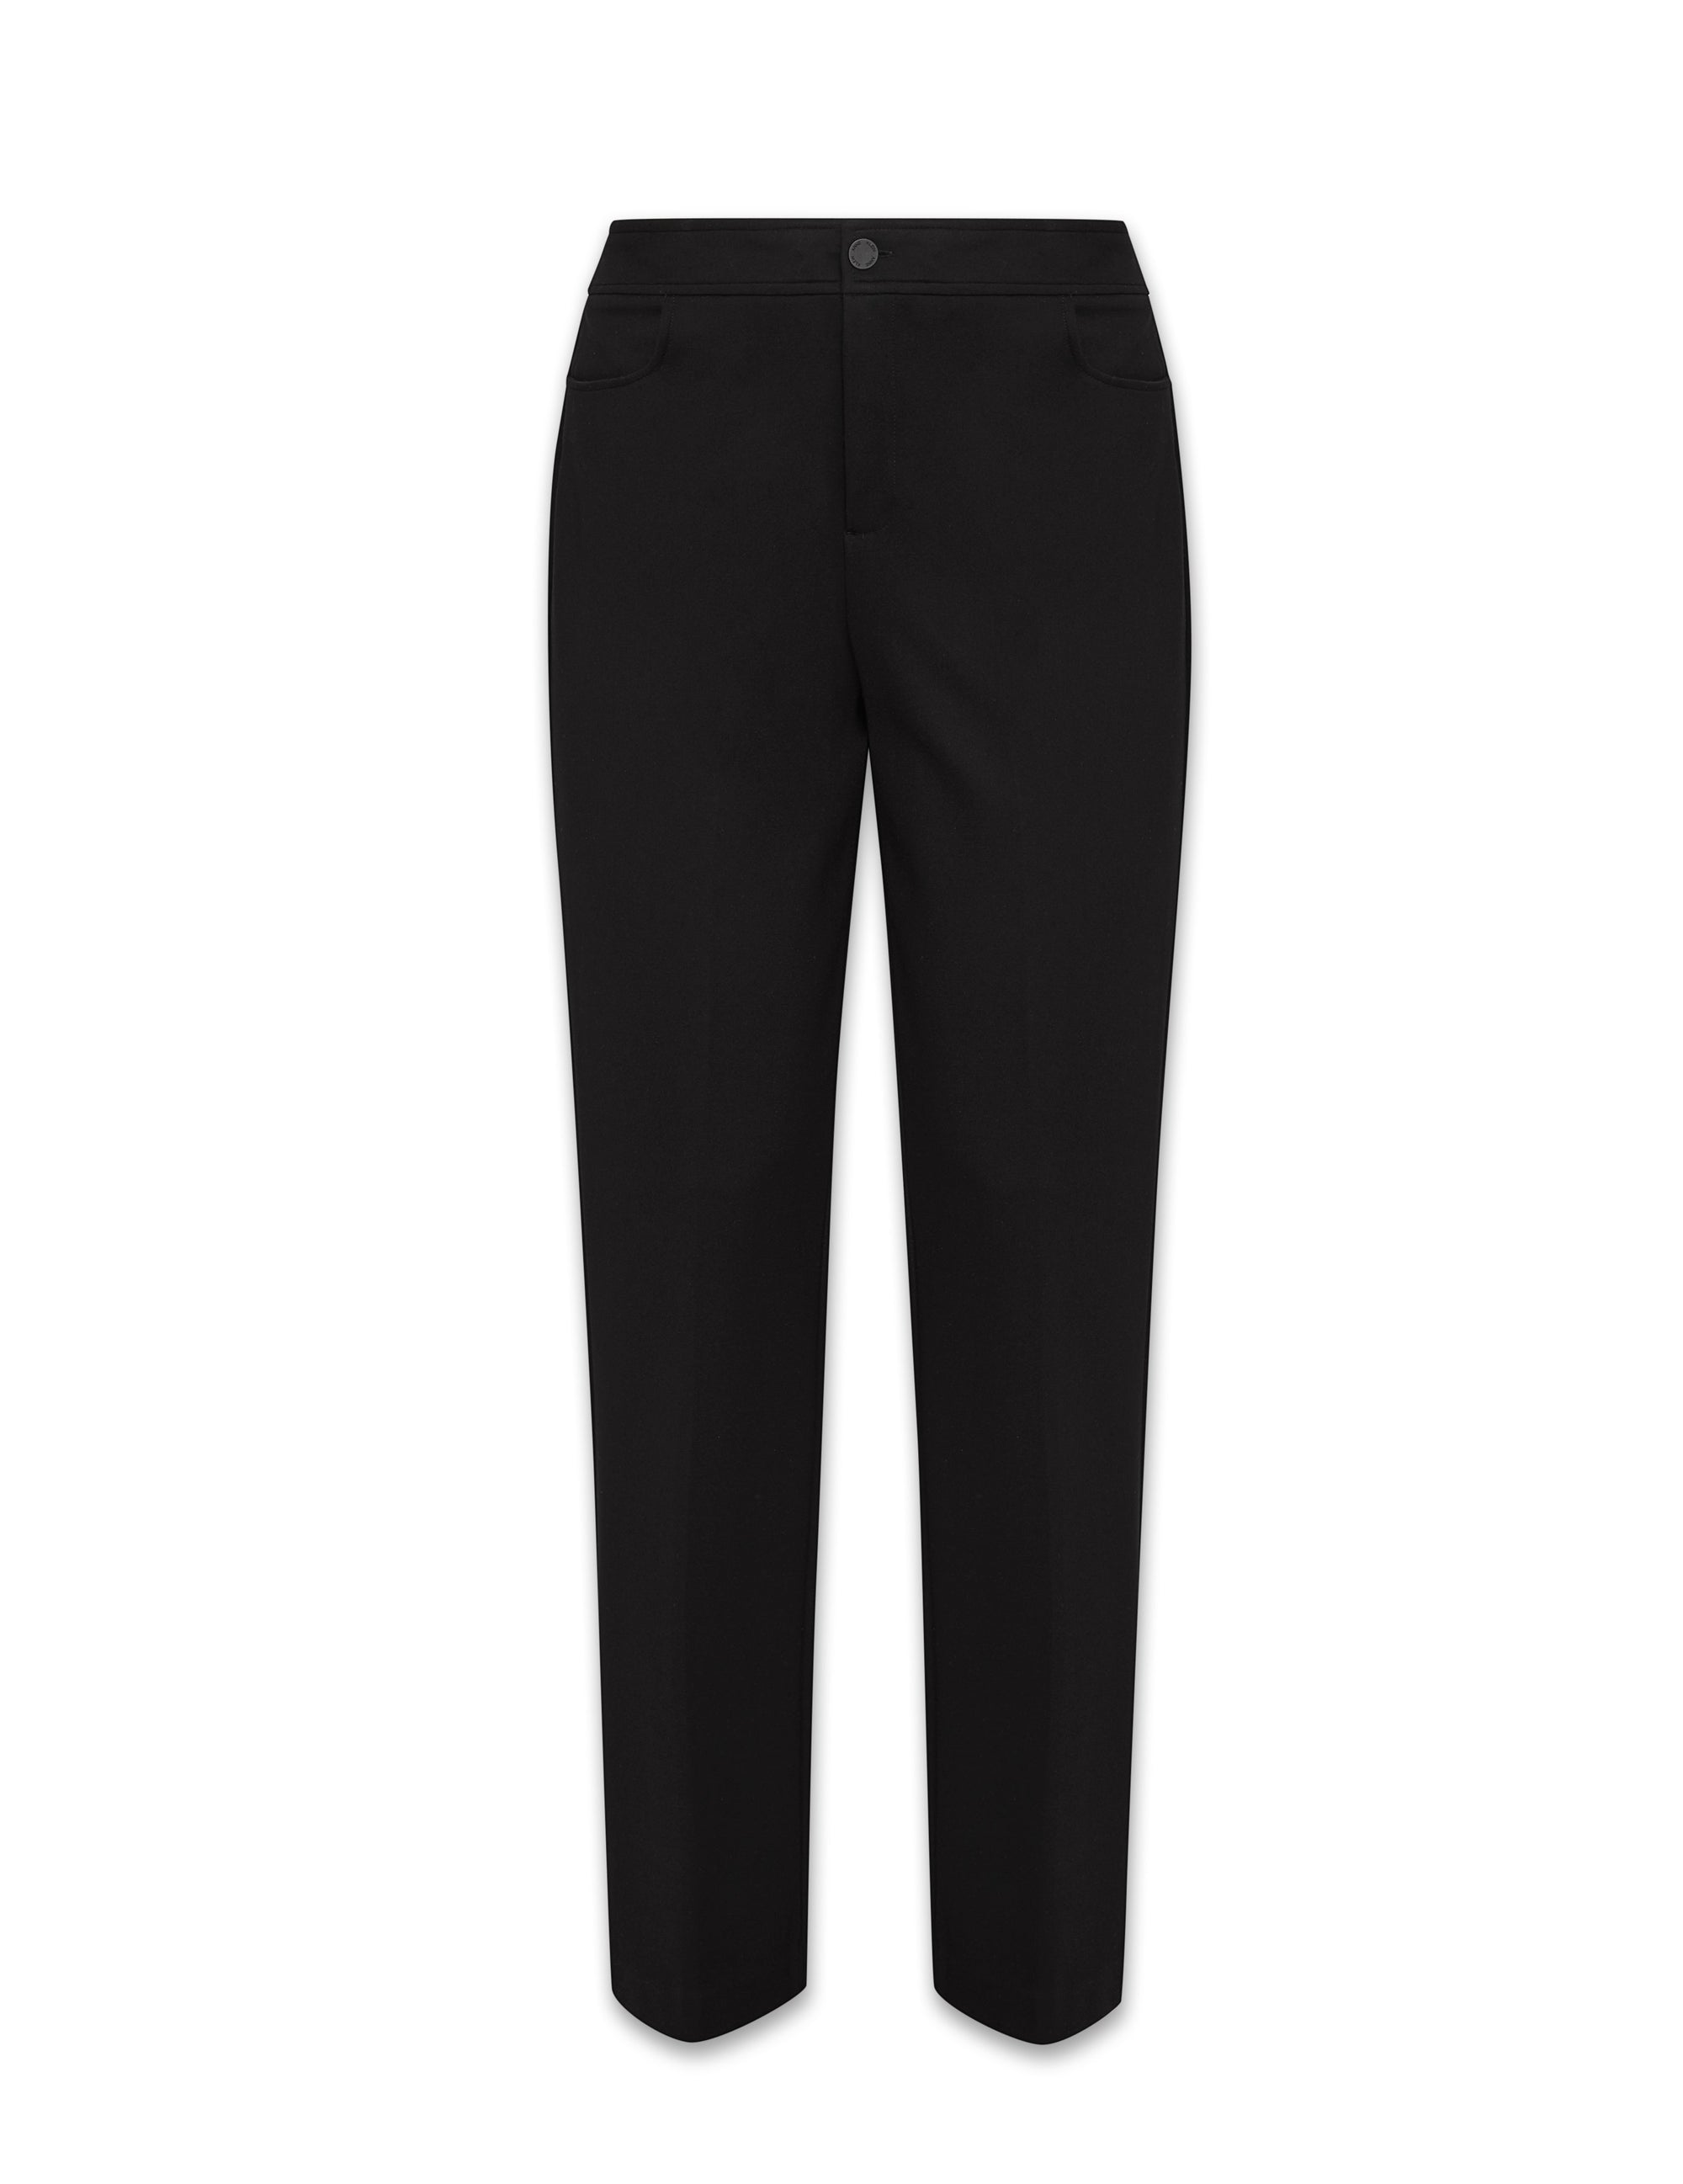 Anne Klein Black Flare Leg Compression Pant